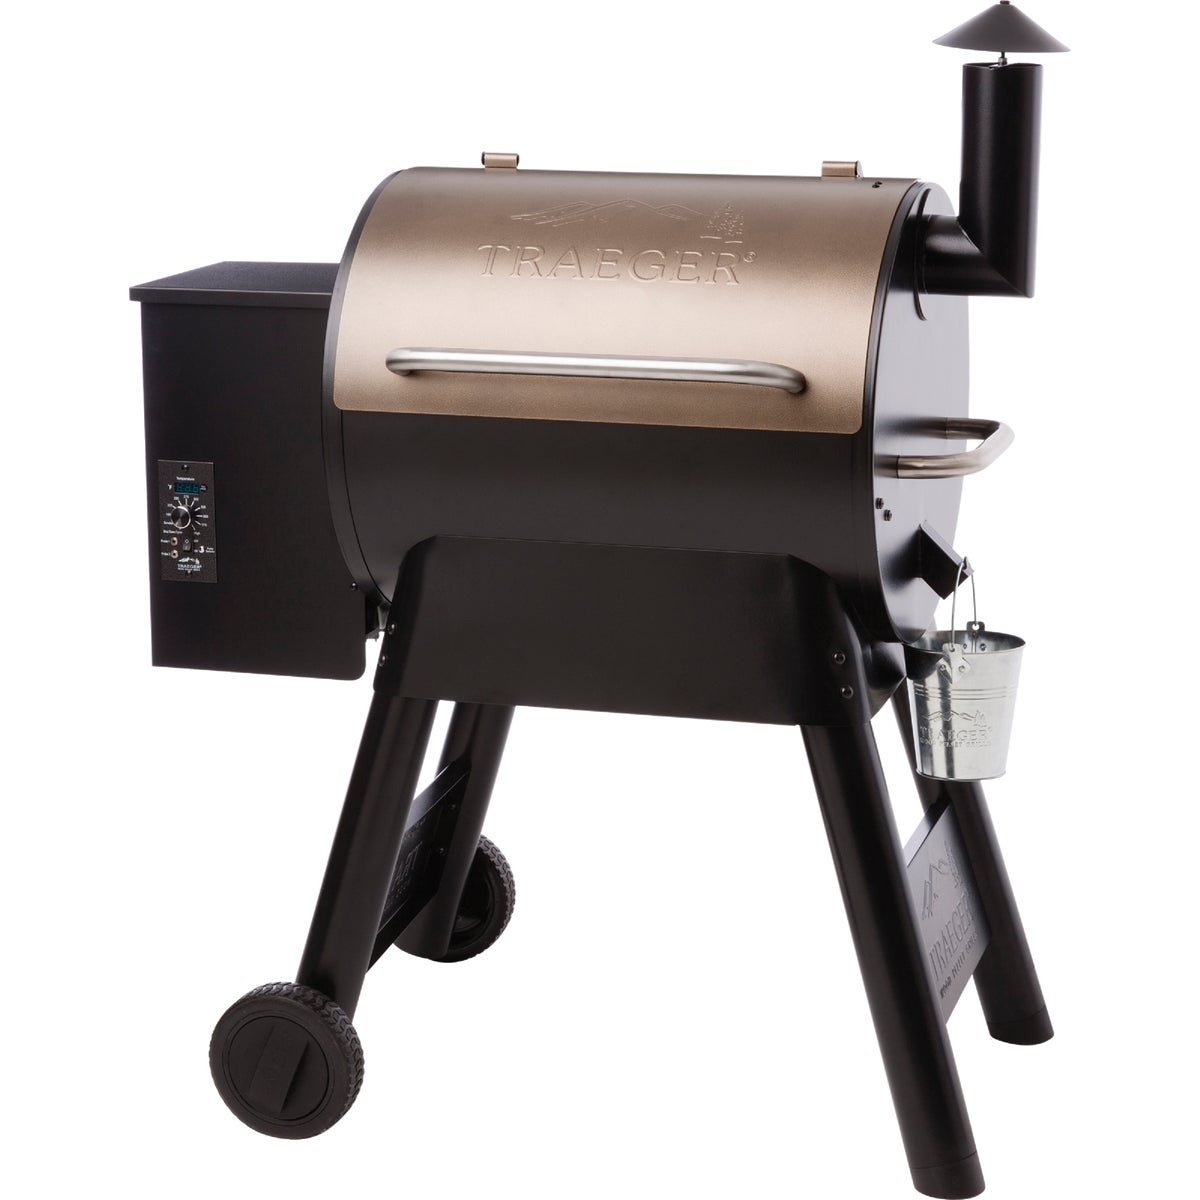 LIL TEXAS ELITE GRILL - BBQ07E by Traeger Industries